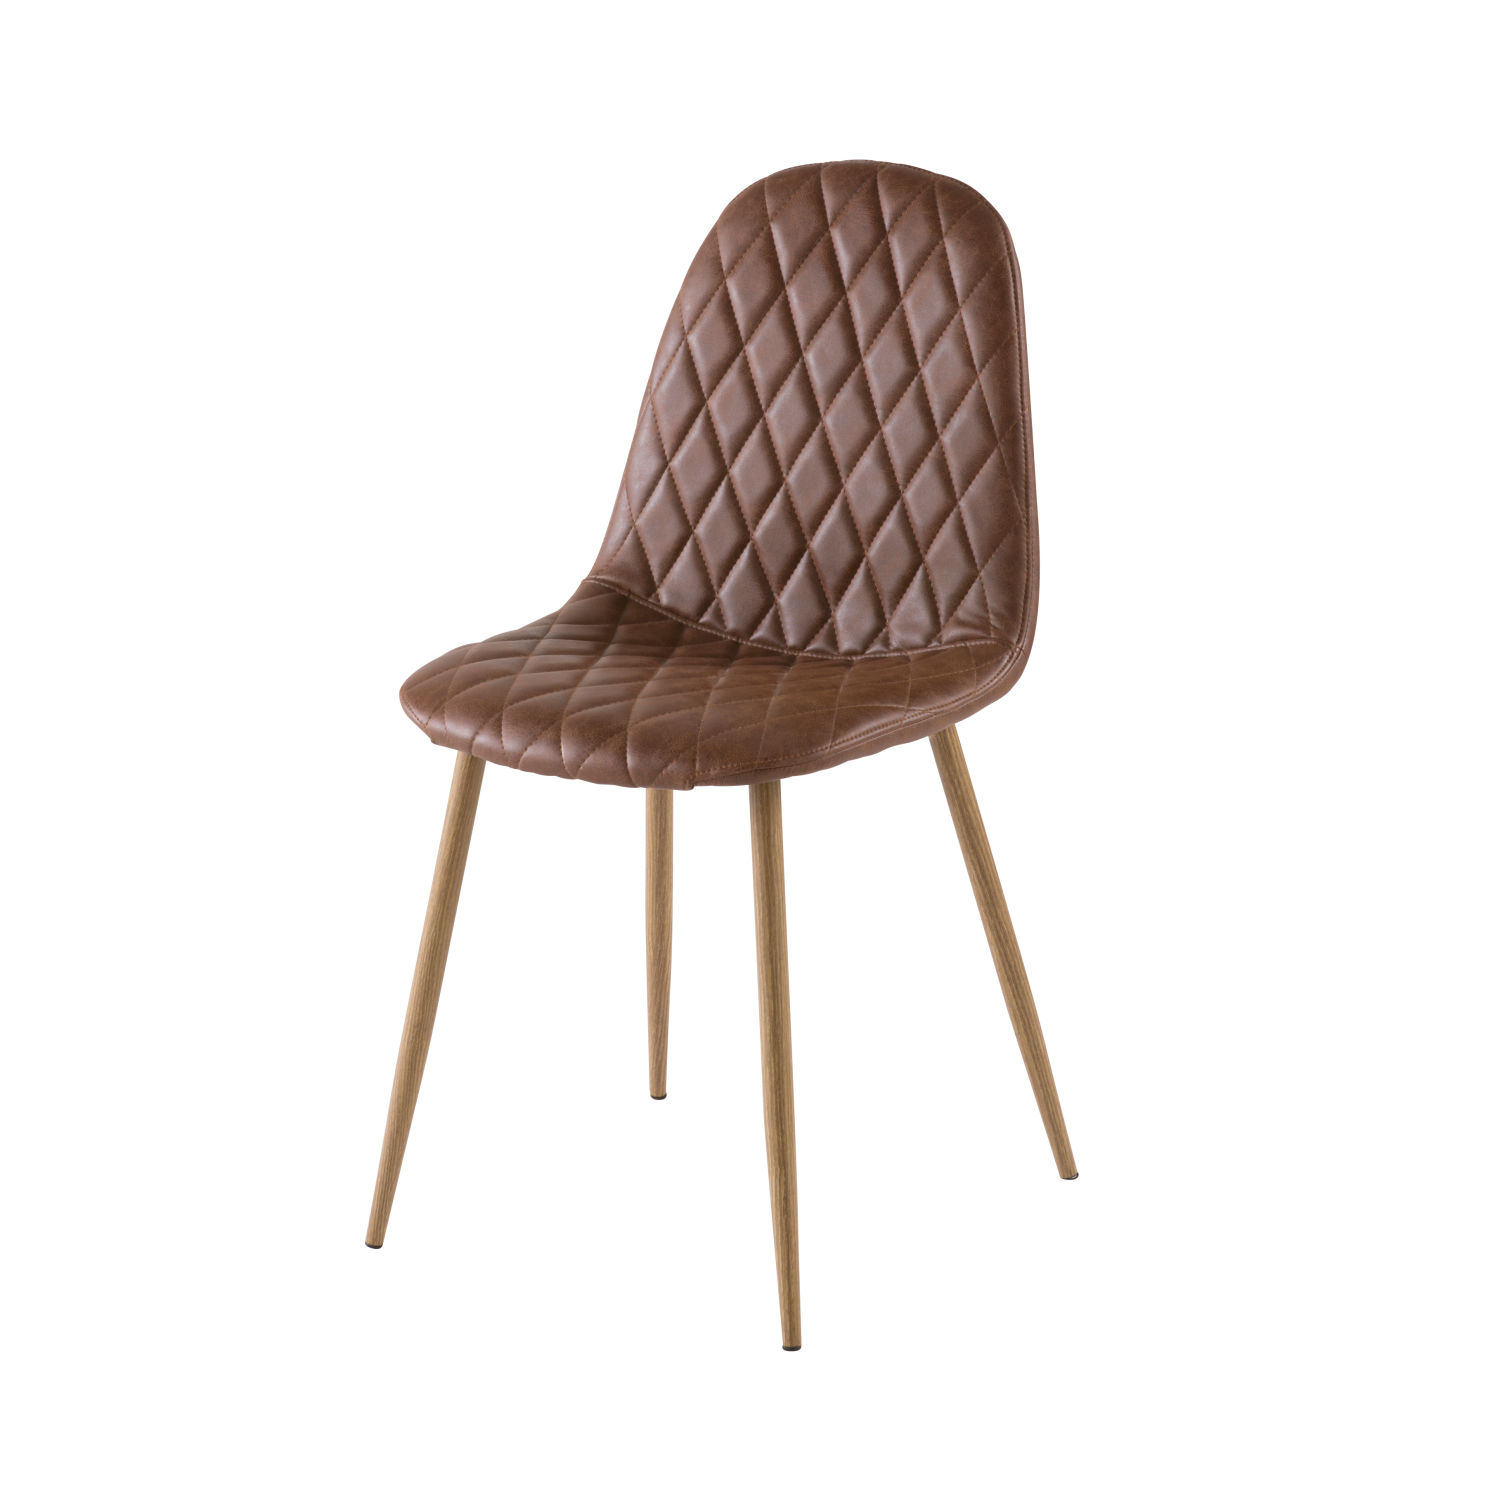 Chaise Style Scandinave Matelasse Camel Clyde